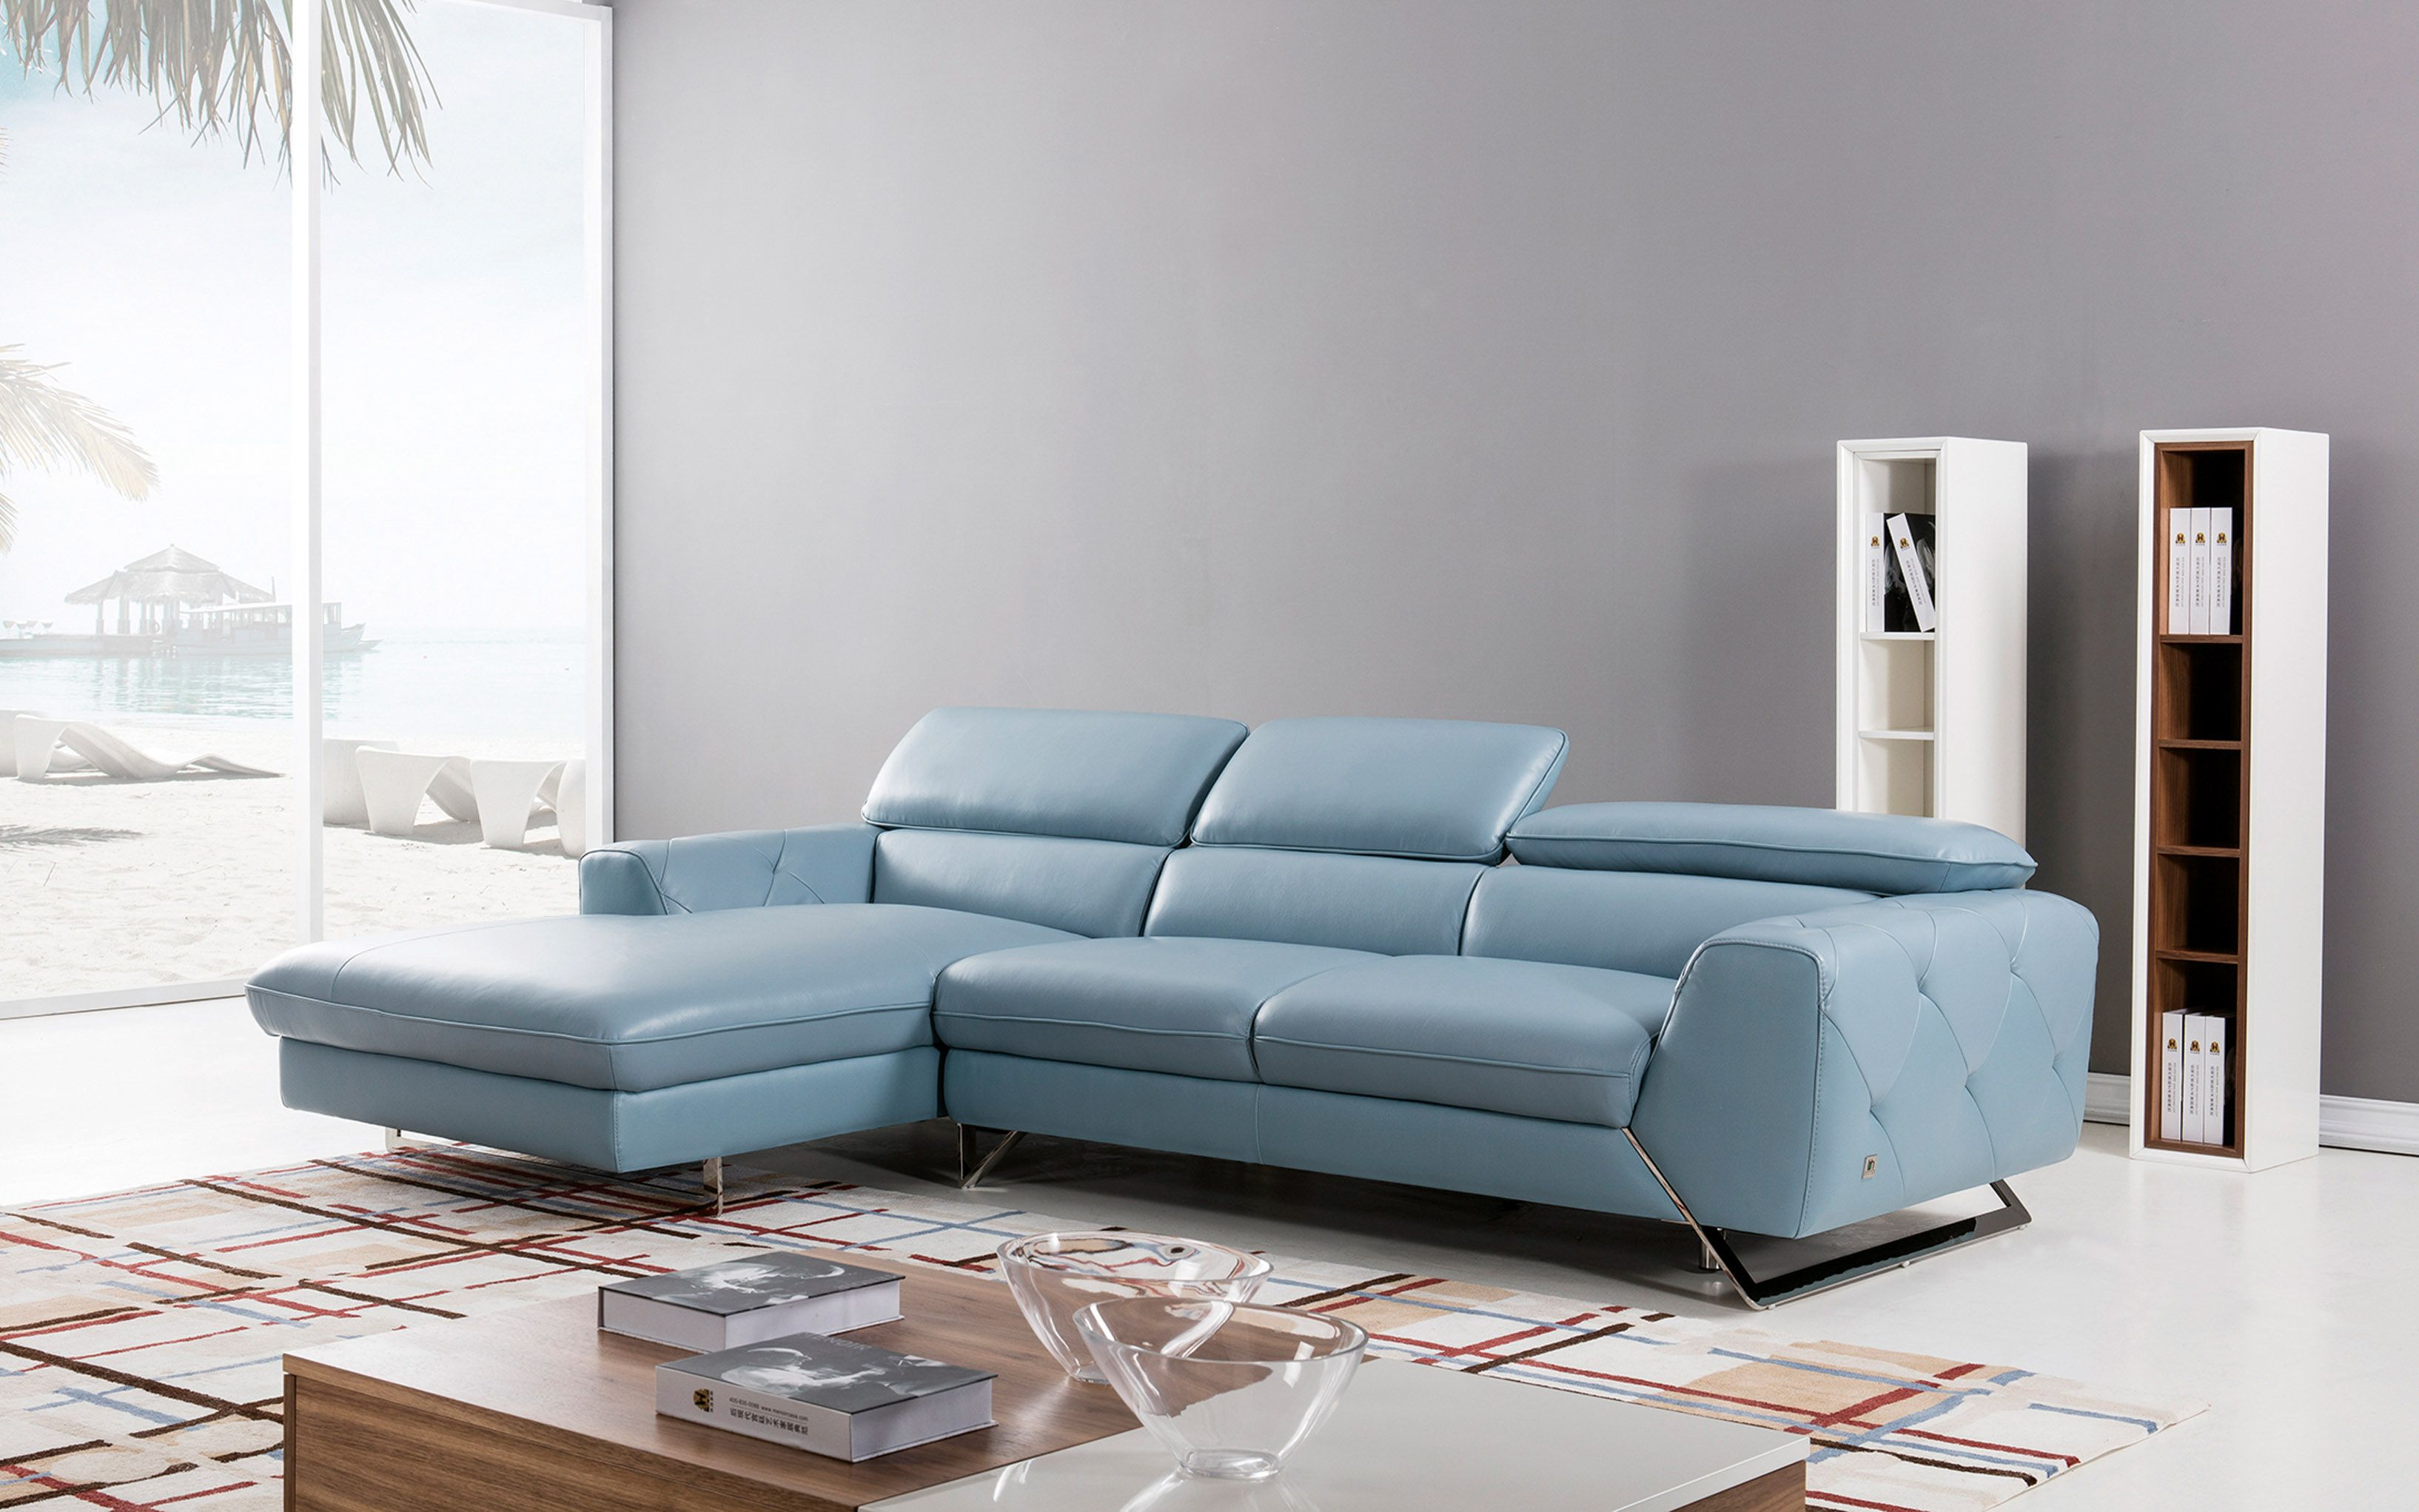 Aqua Italian leather sectional sofa This versatile functional and